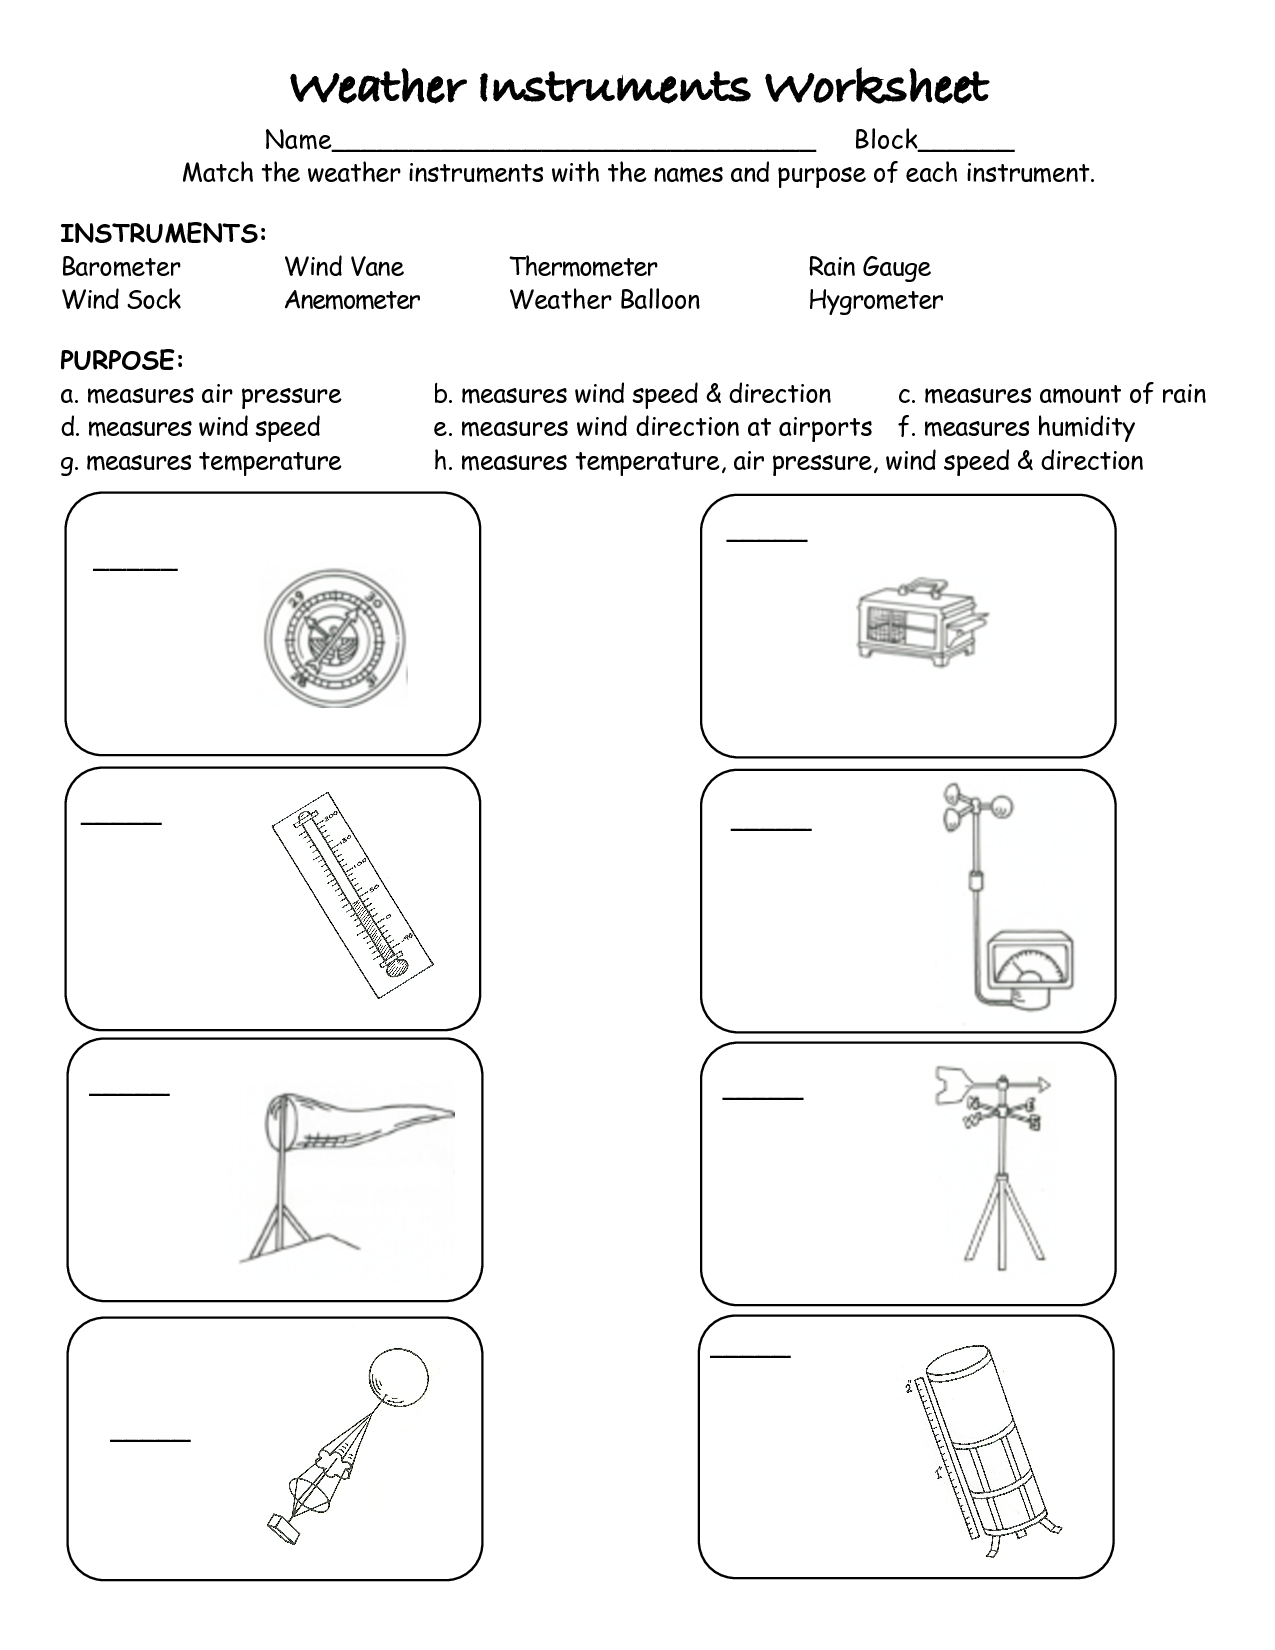 Worksheets Weather Instruments Weather Worksheets Pdf Recipes